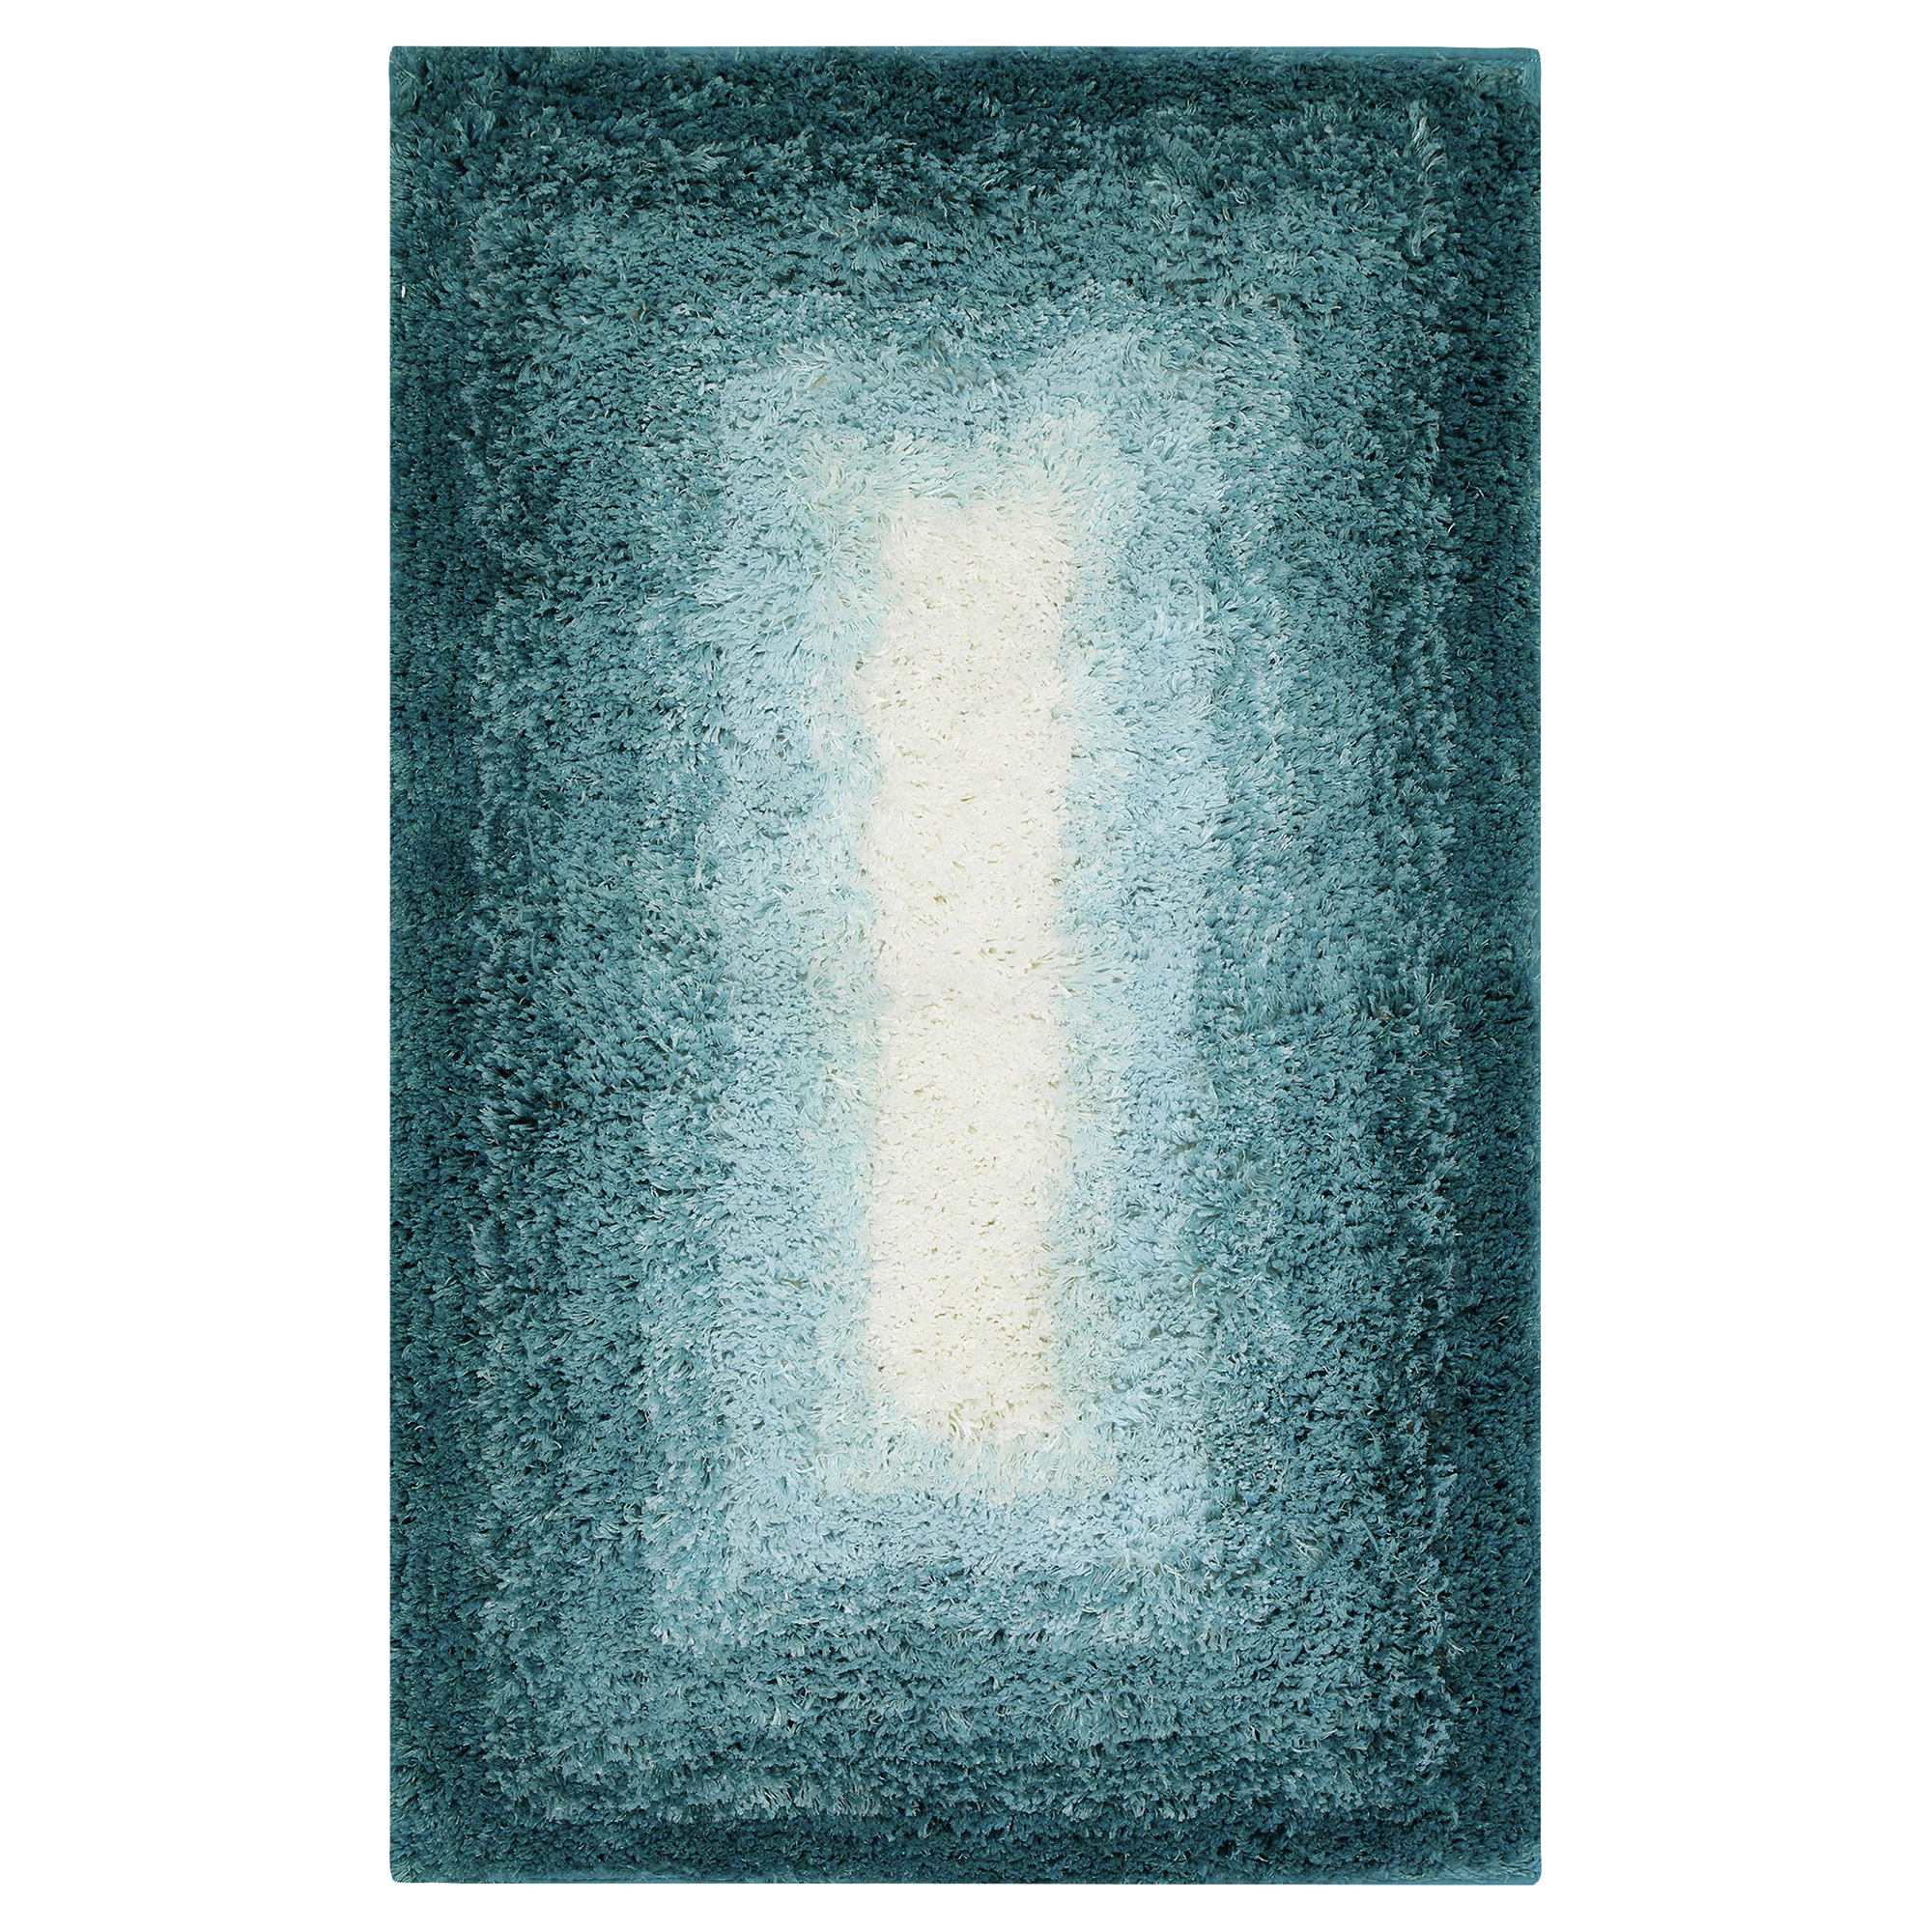 Aqua bathroom rugs - Aqua Bathroom Rugs 37